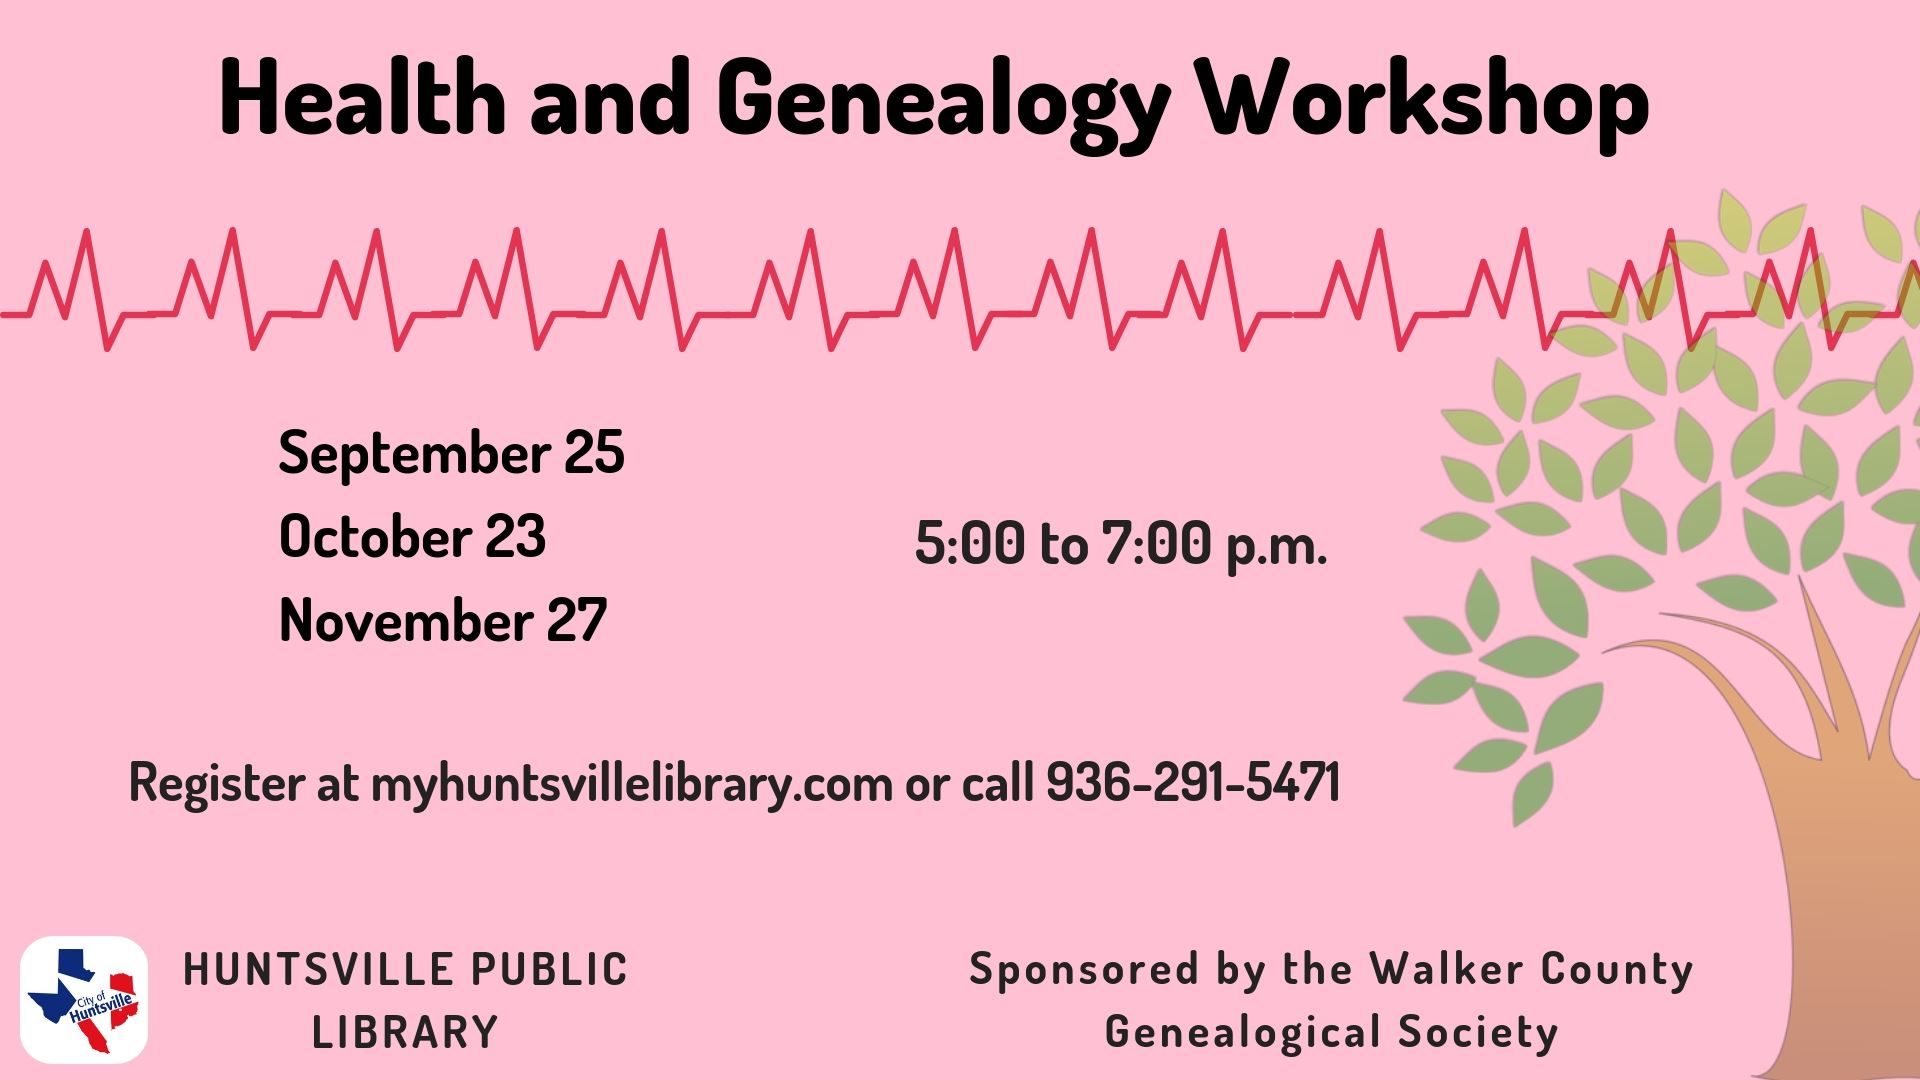 Health and Genealogy workshop